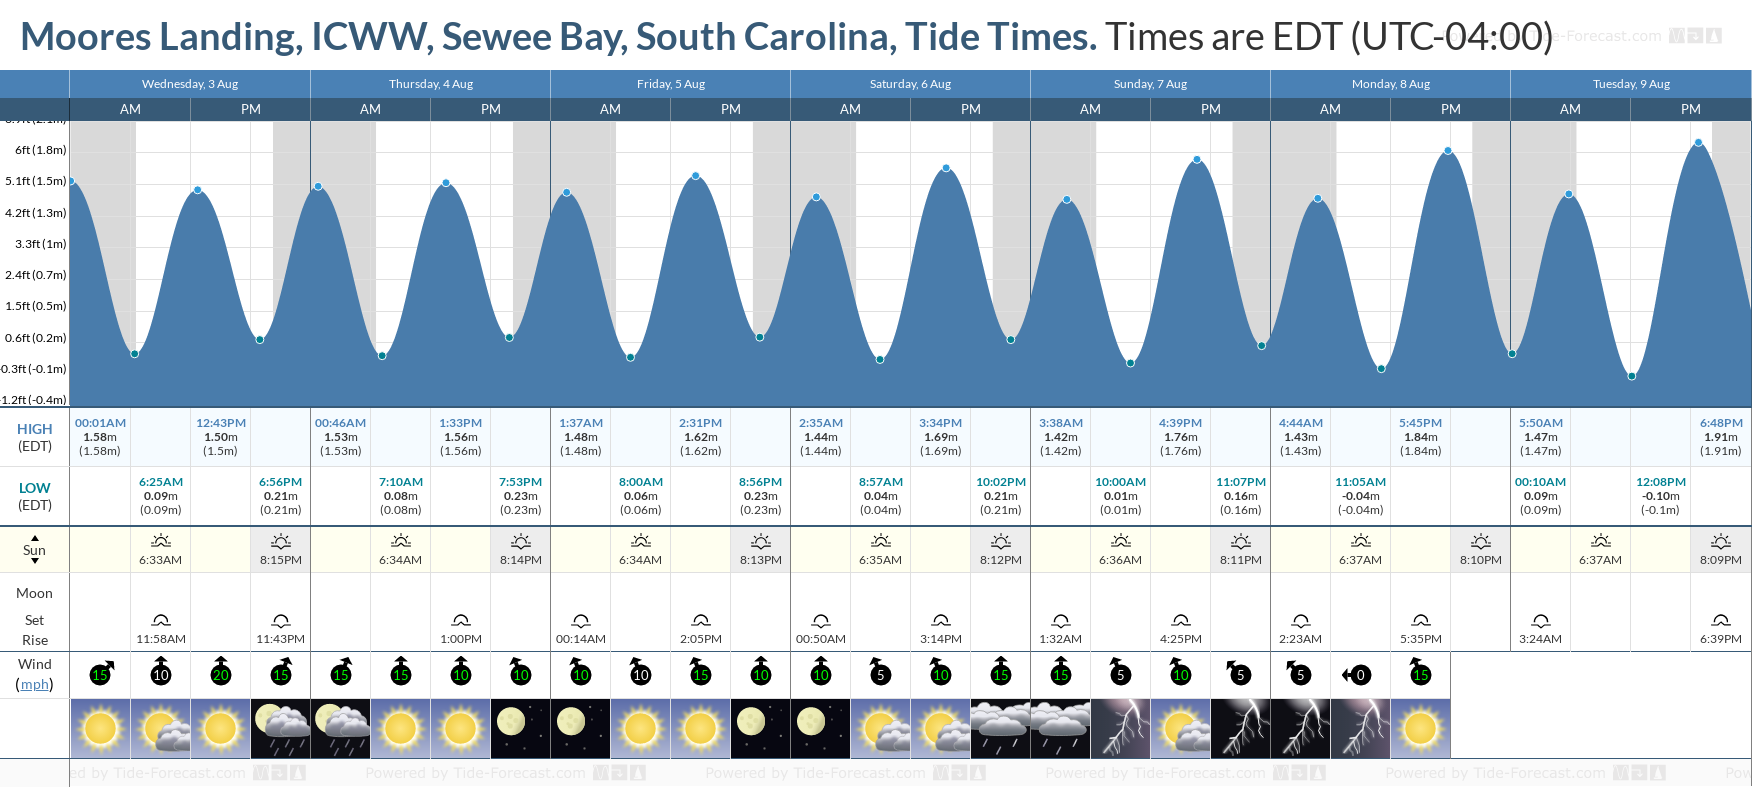 Moores Landing, ICWW, Sewee Bay, South Carolina Tide Chart including high and low tide tide times for the next 7 days